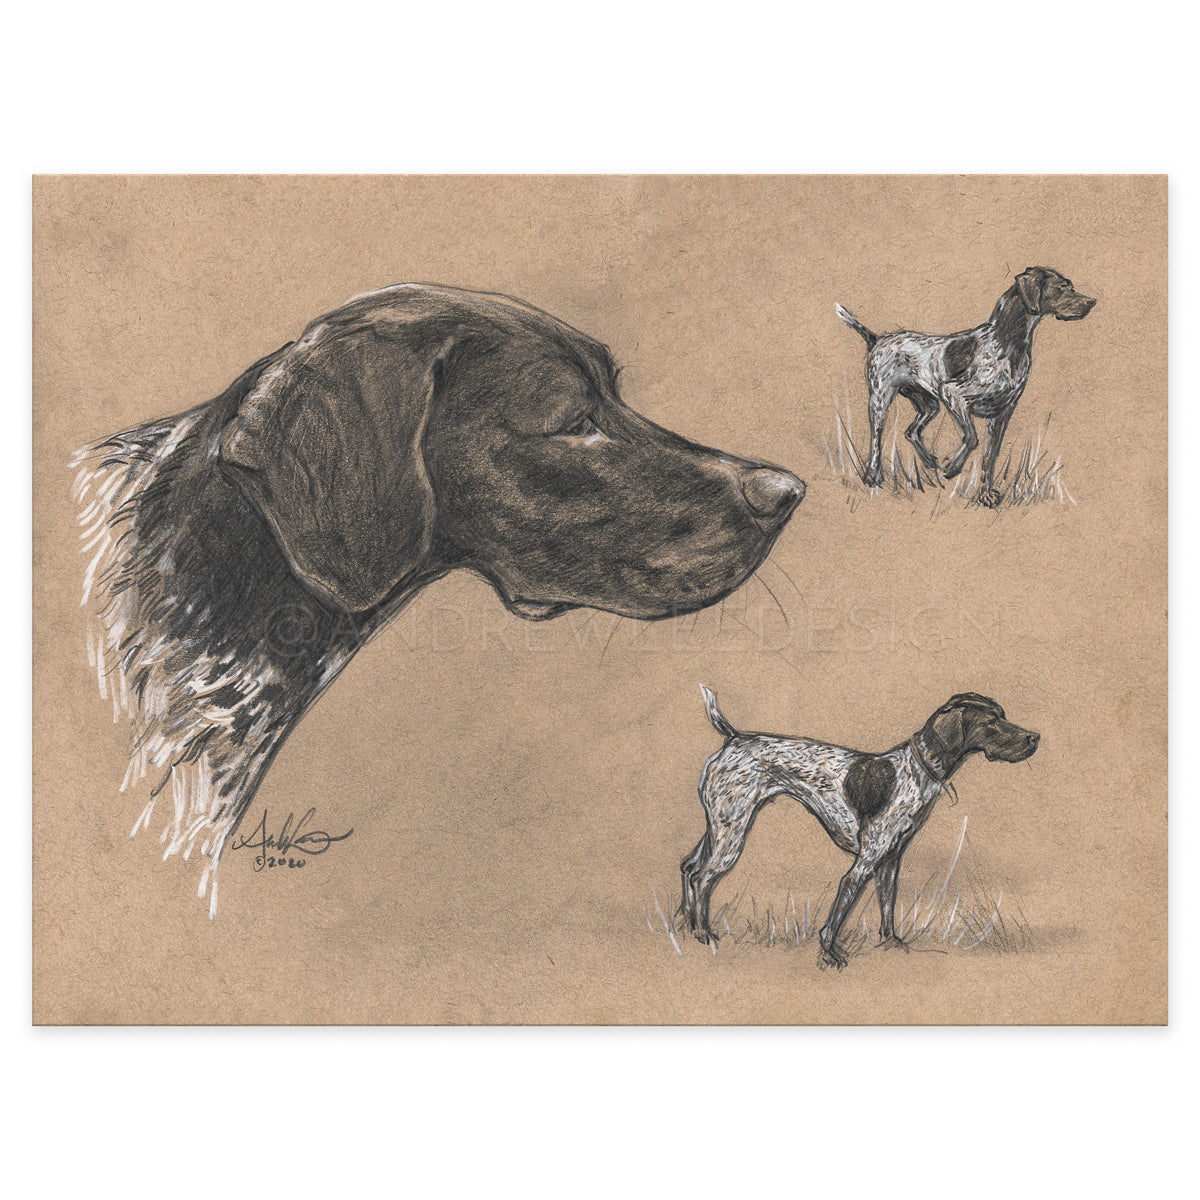 "German Shorthaired Pointer Study, 9x12"" Print"